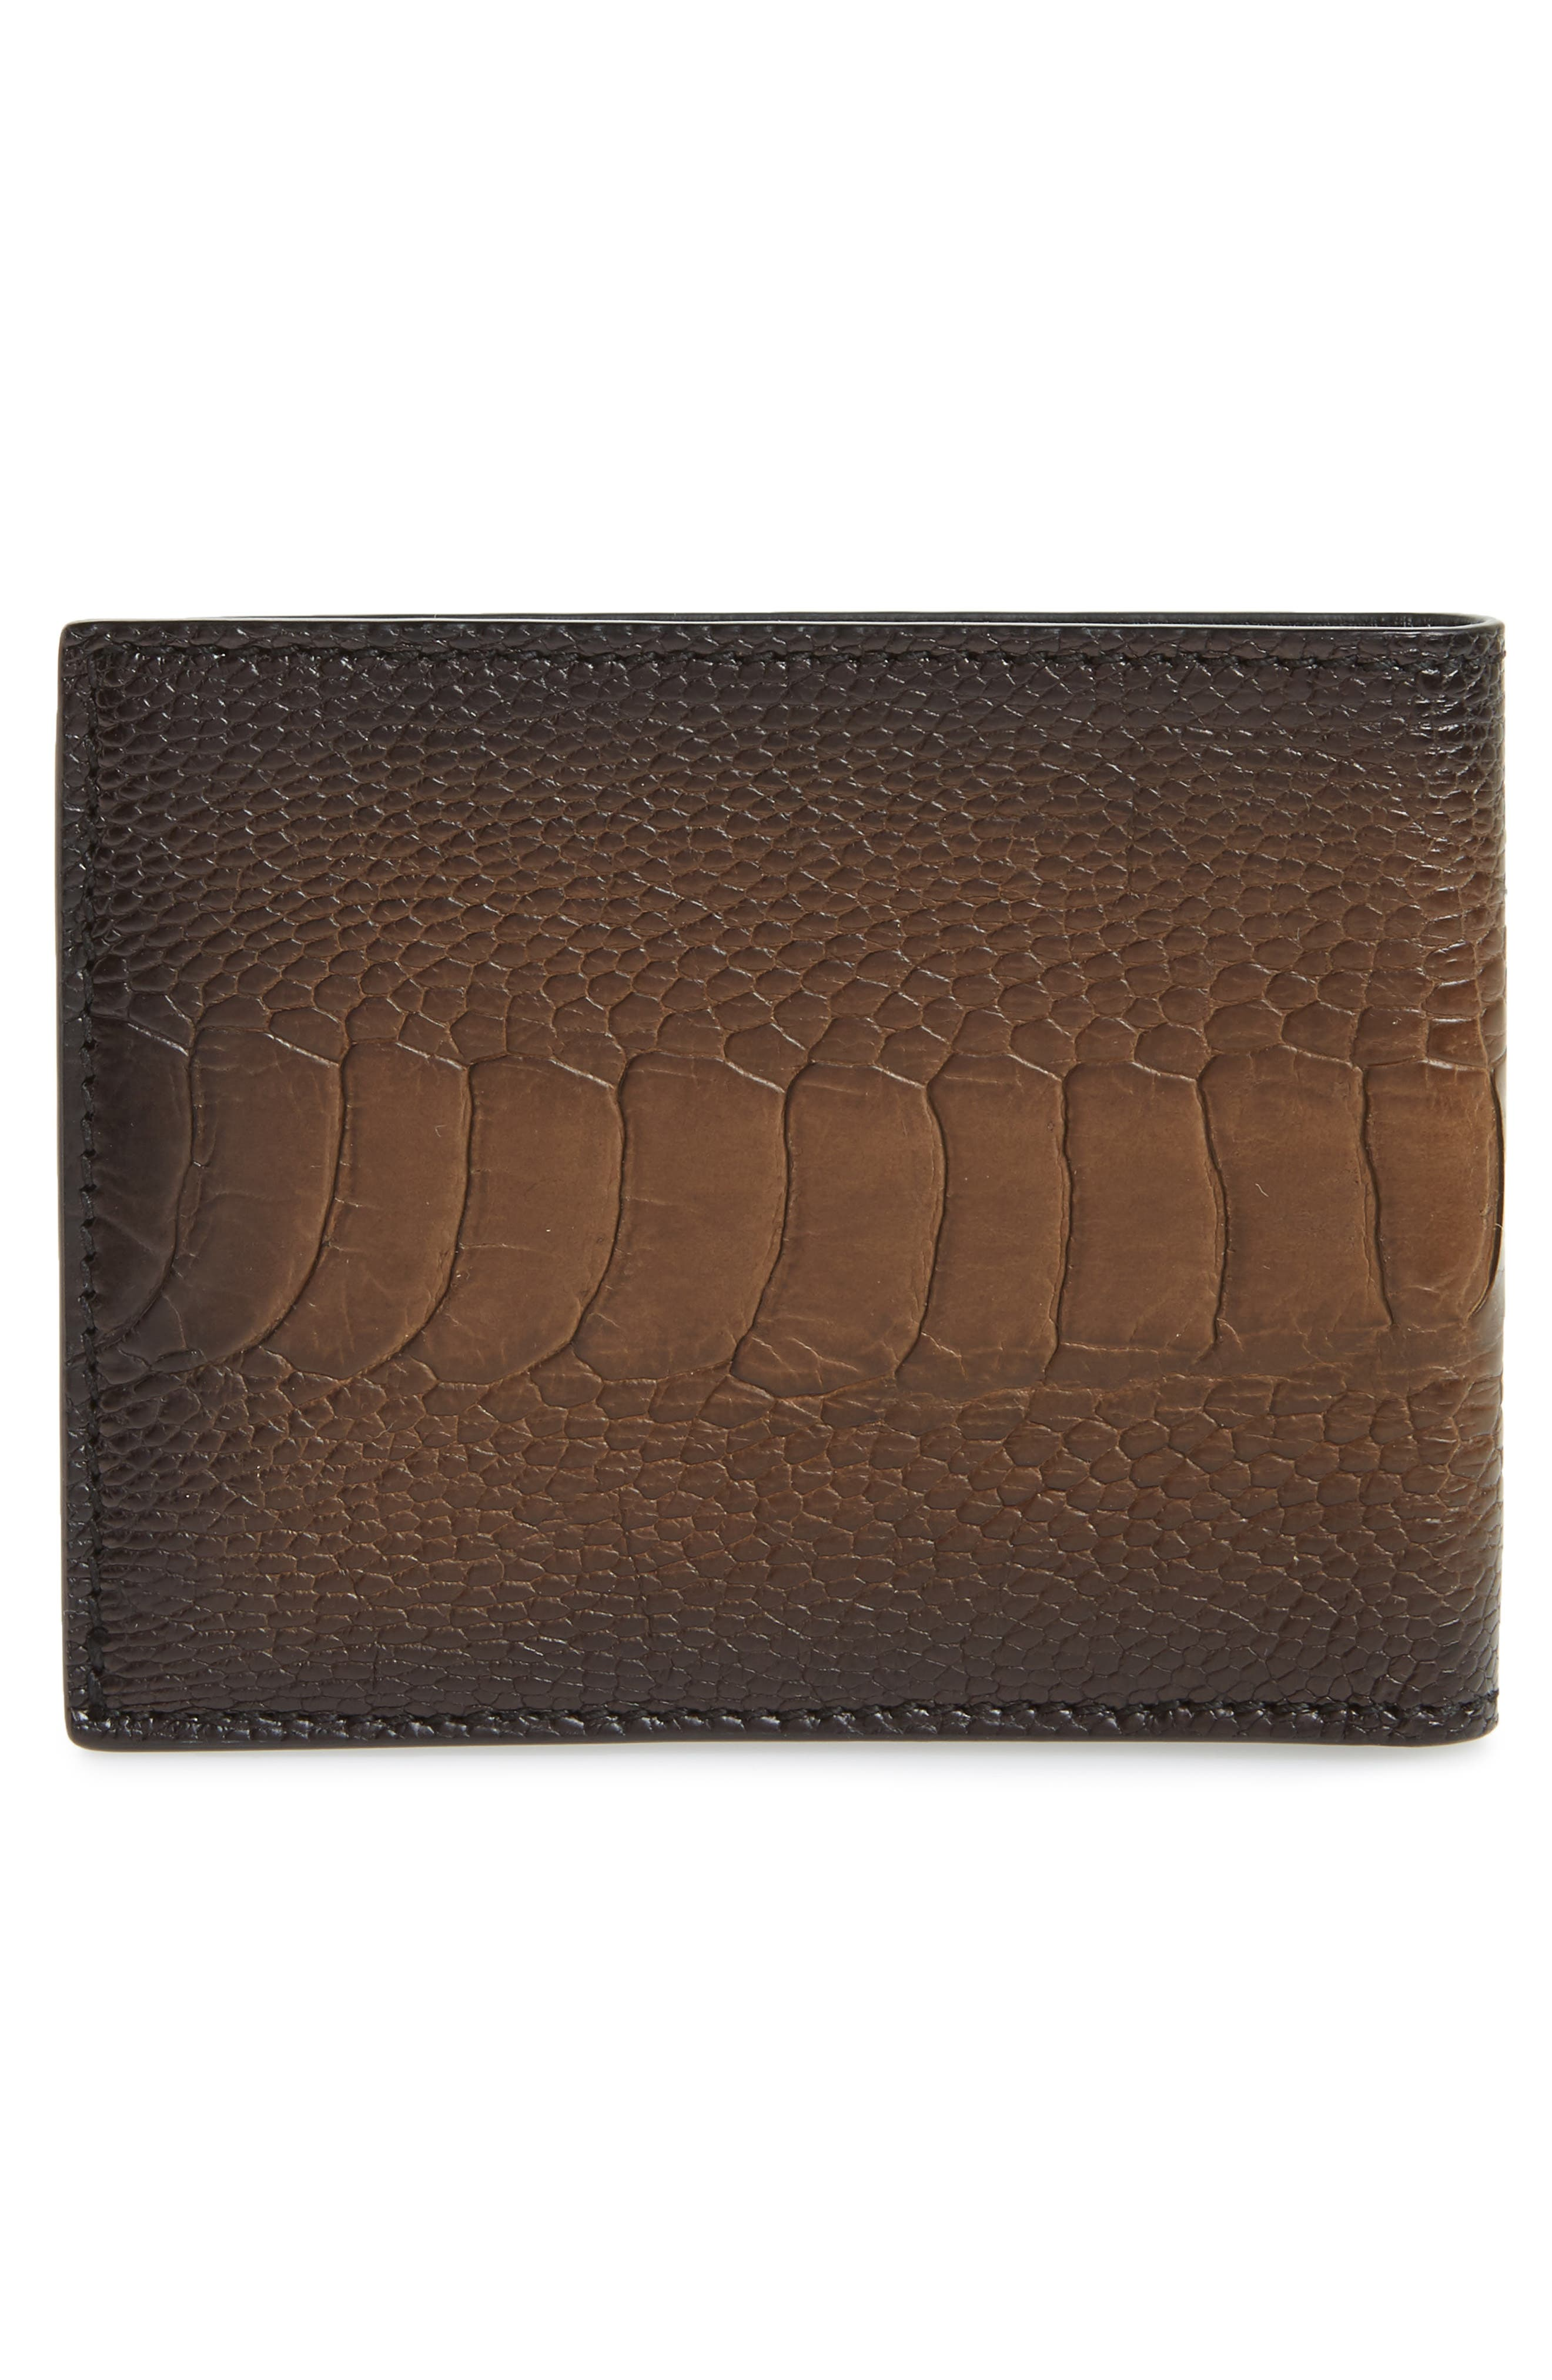 Leather Wallet,                             Alternate thumbnail 3, color,                             240